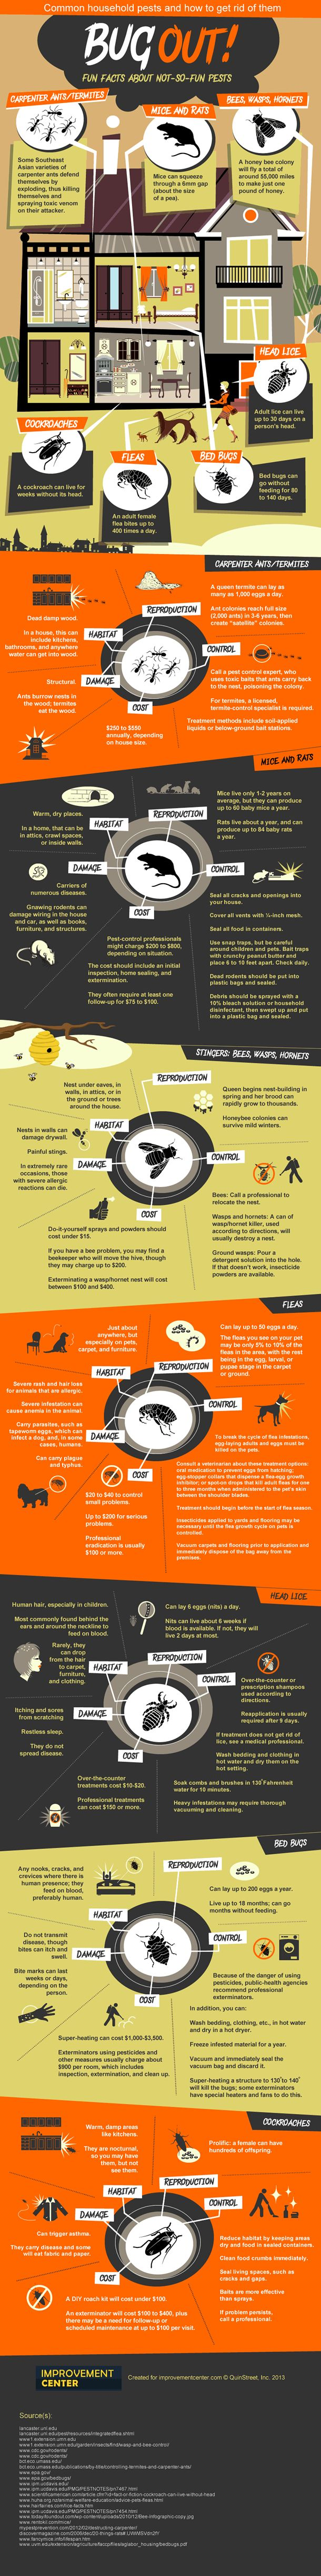 Bug Out Infographic Pest Control Garden Pests Household Pests